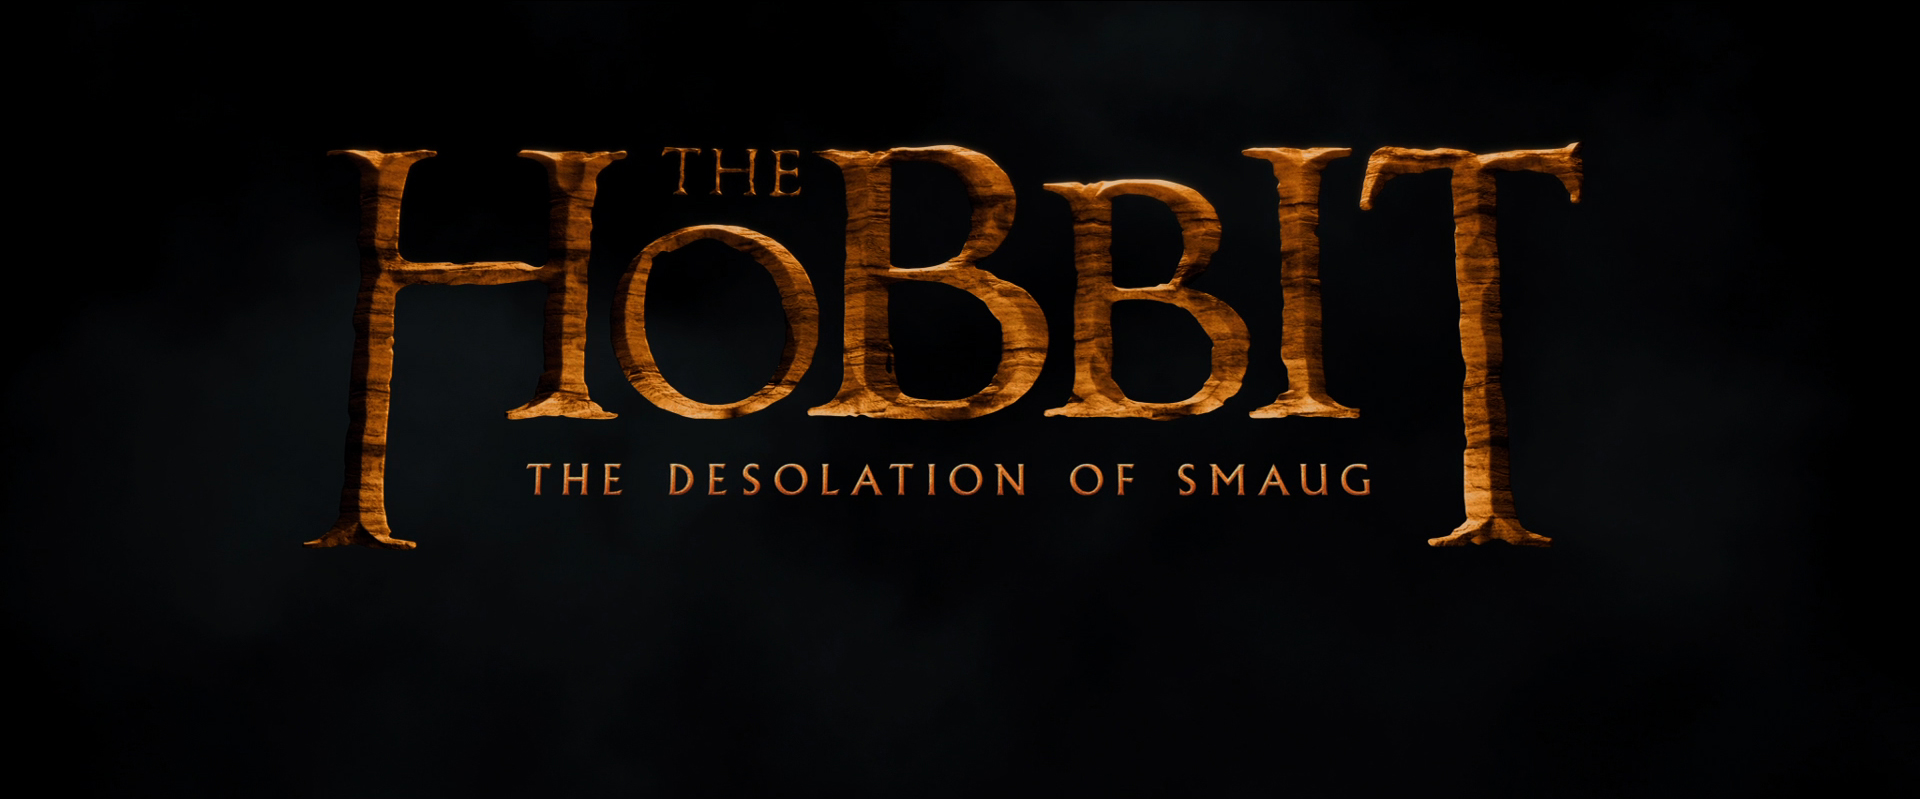 title card hobbit movie news and rumors theonering net